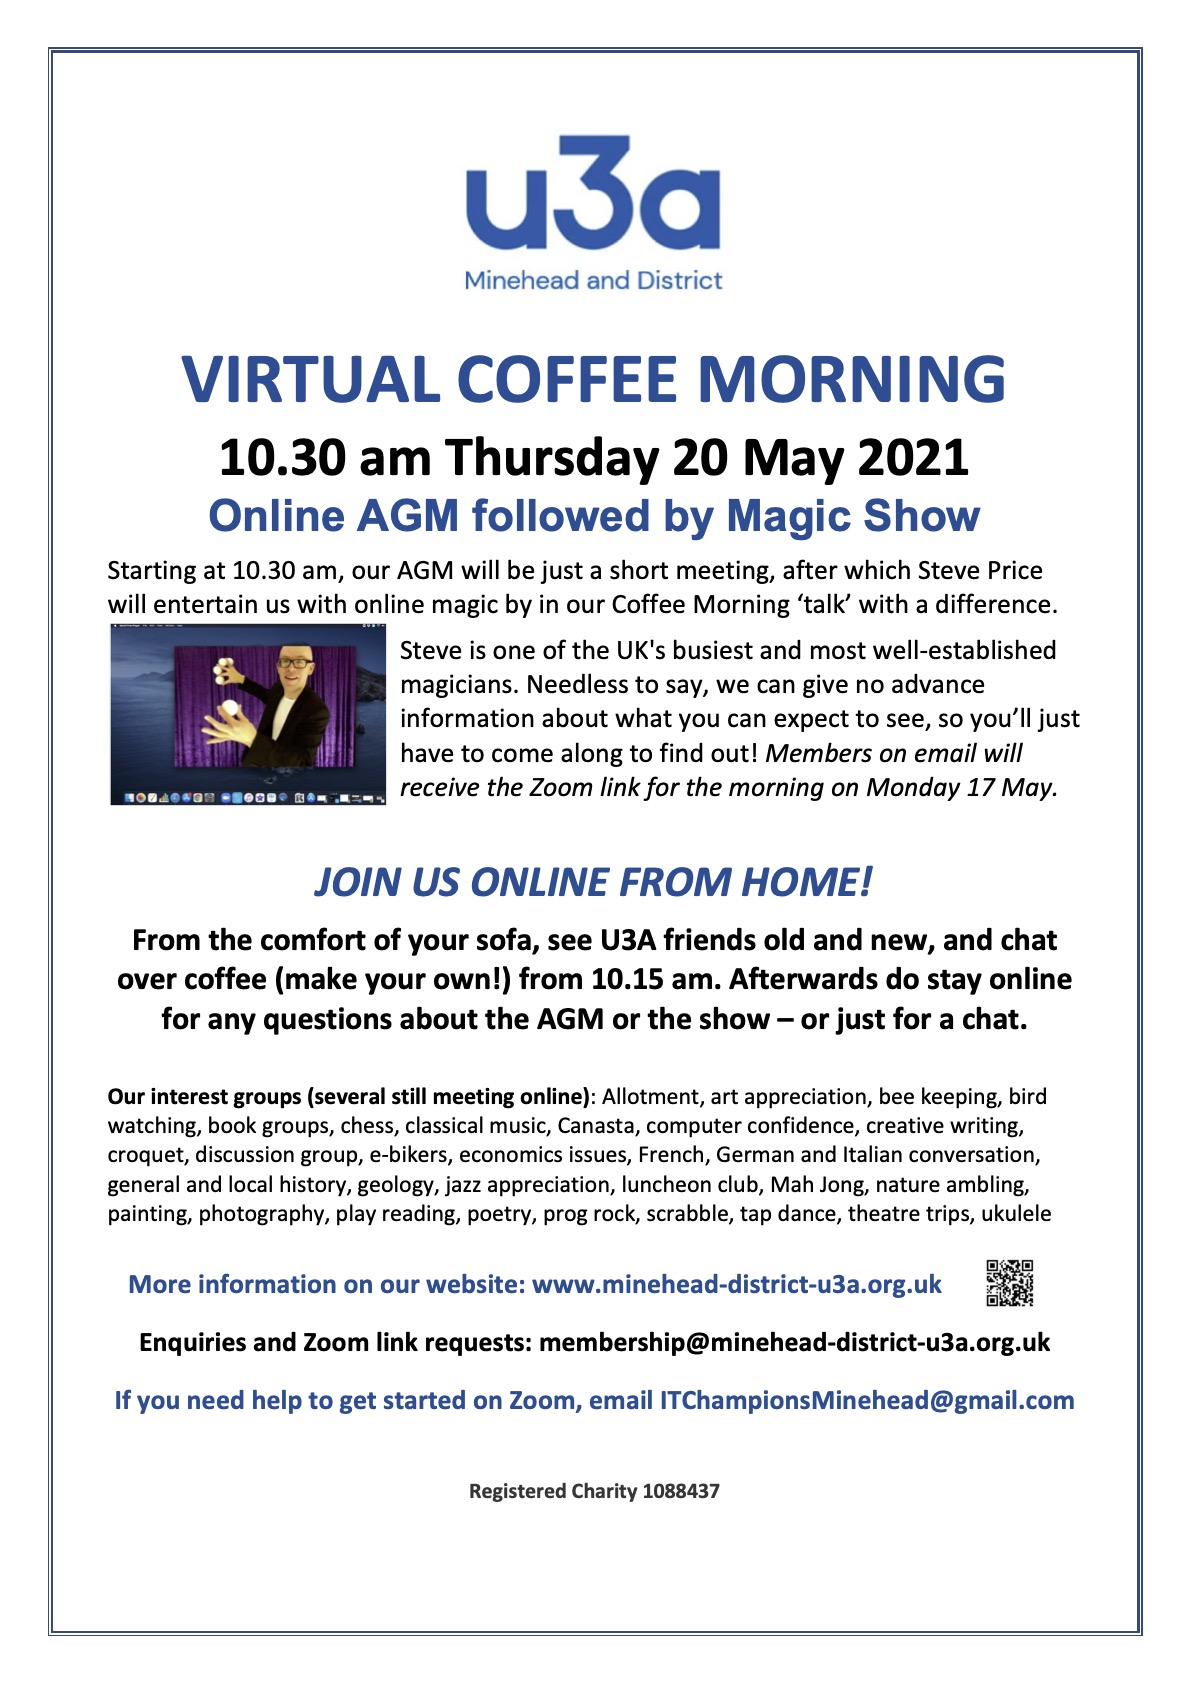 U3A Coffee Morning Poster May 2021